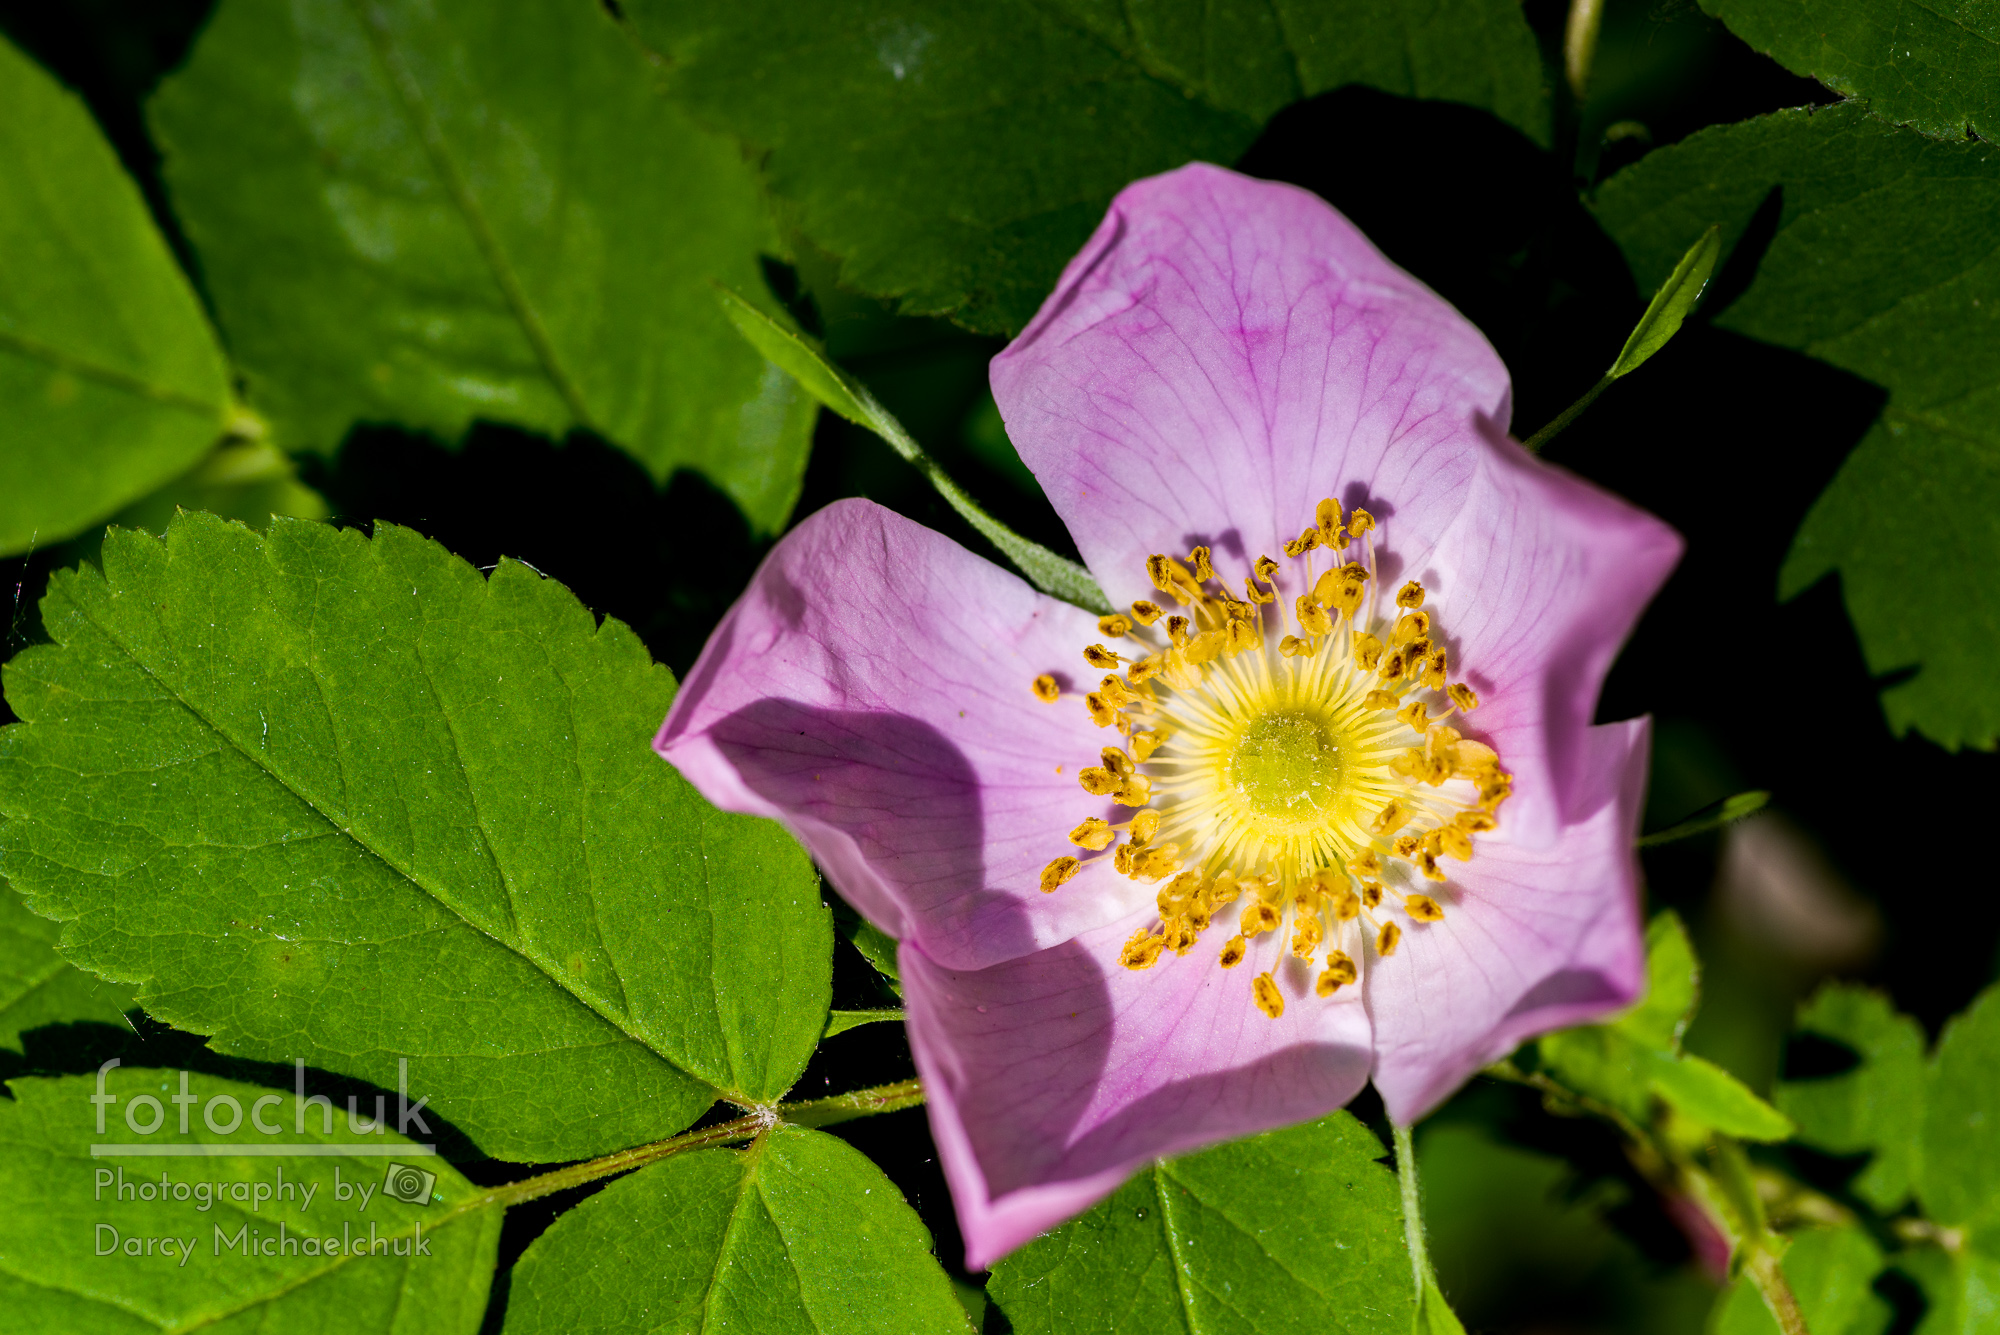 Alberta Wild Rose Opens for Early Sun